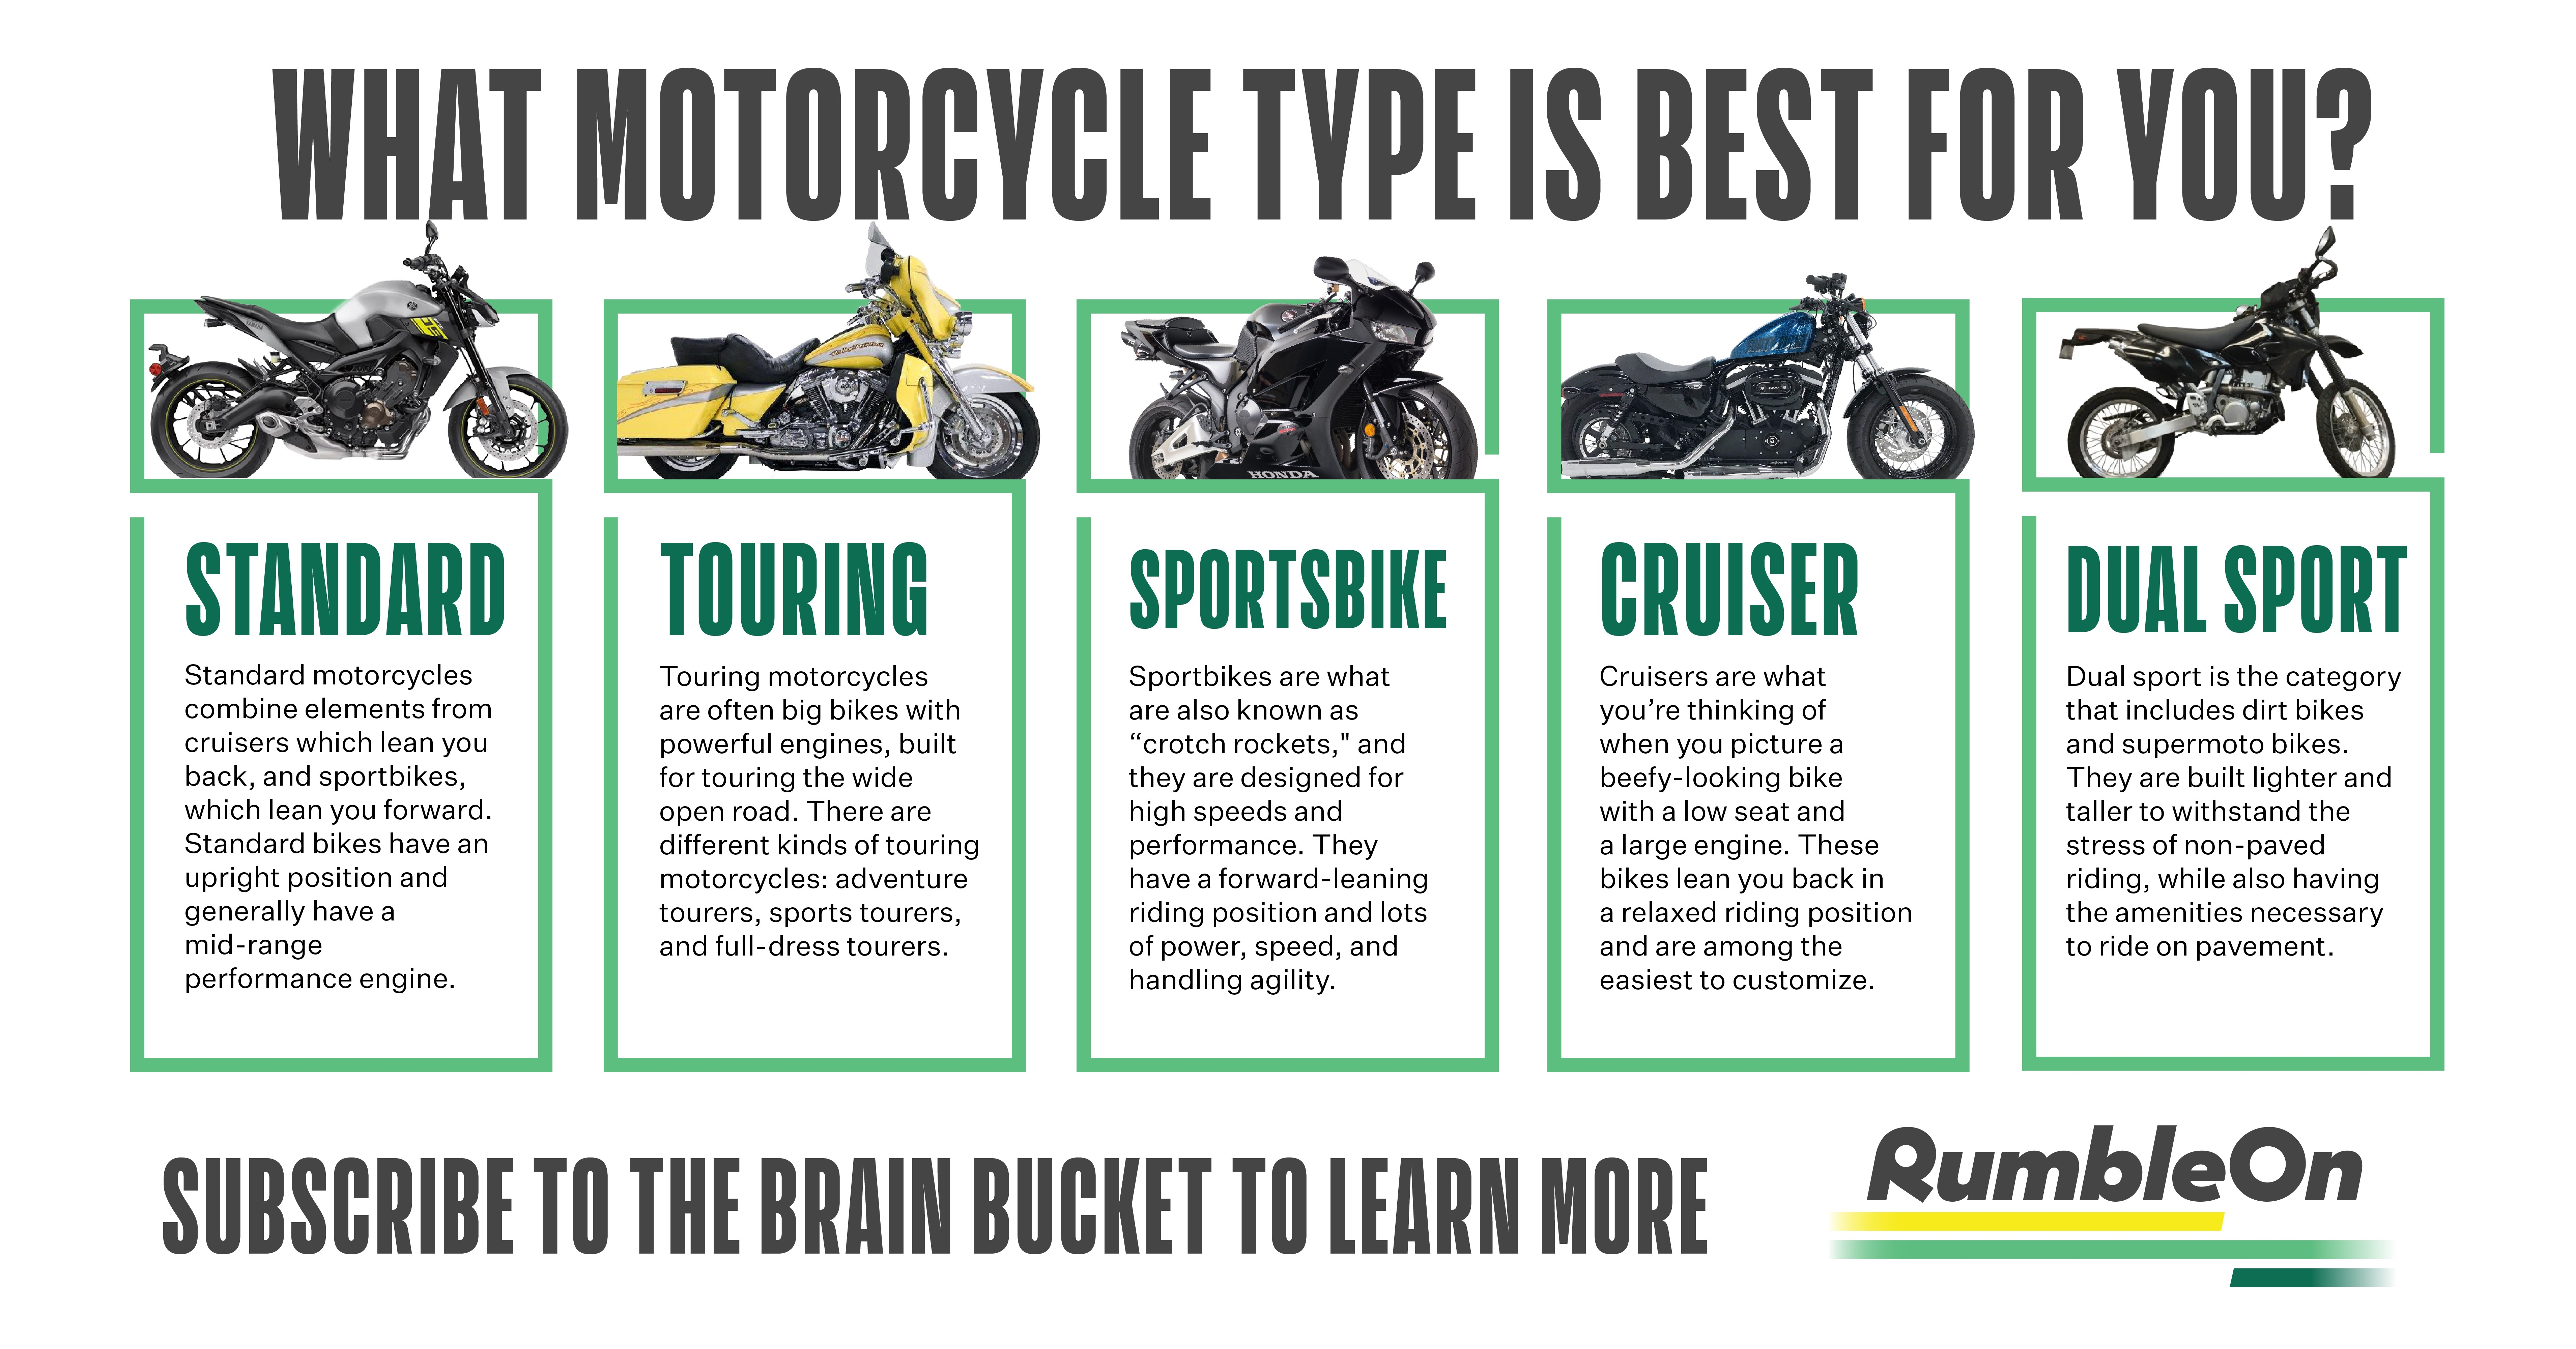 Which motorcycle type is best for you